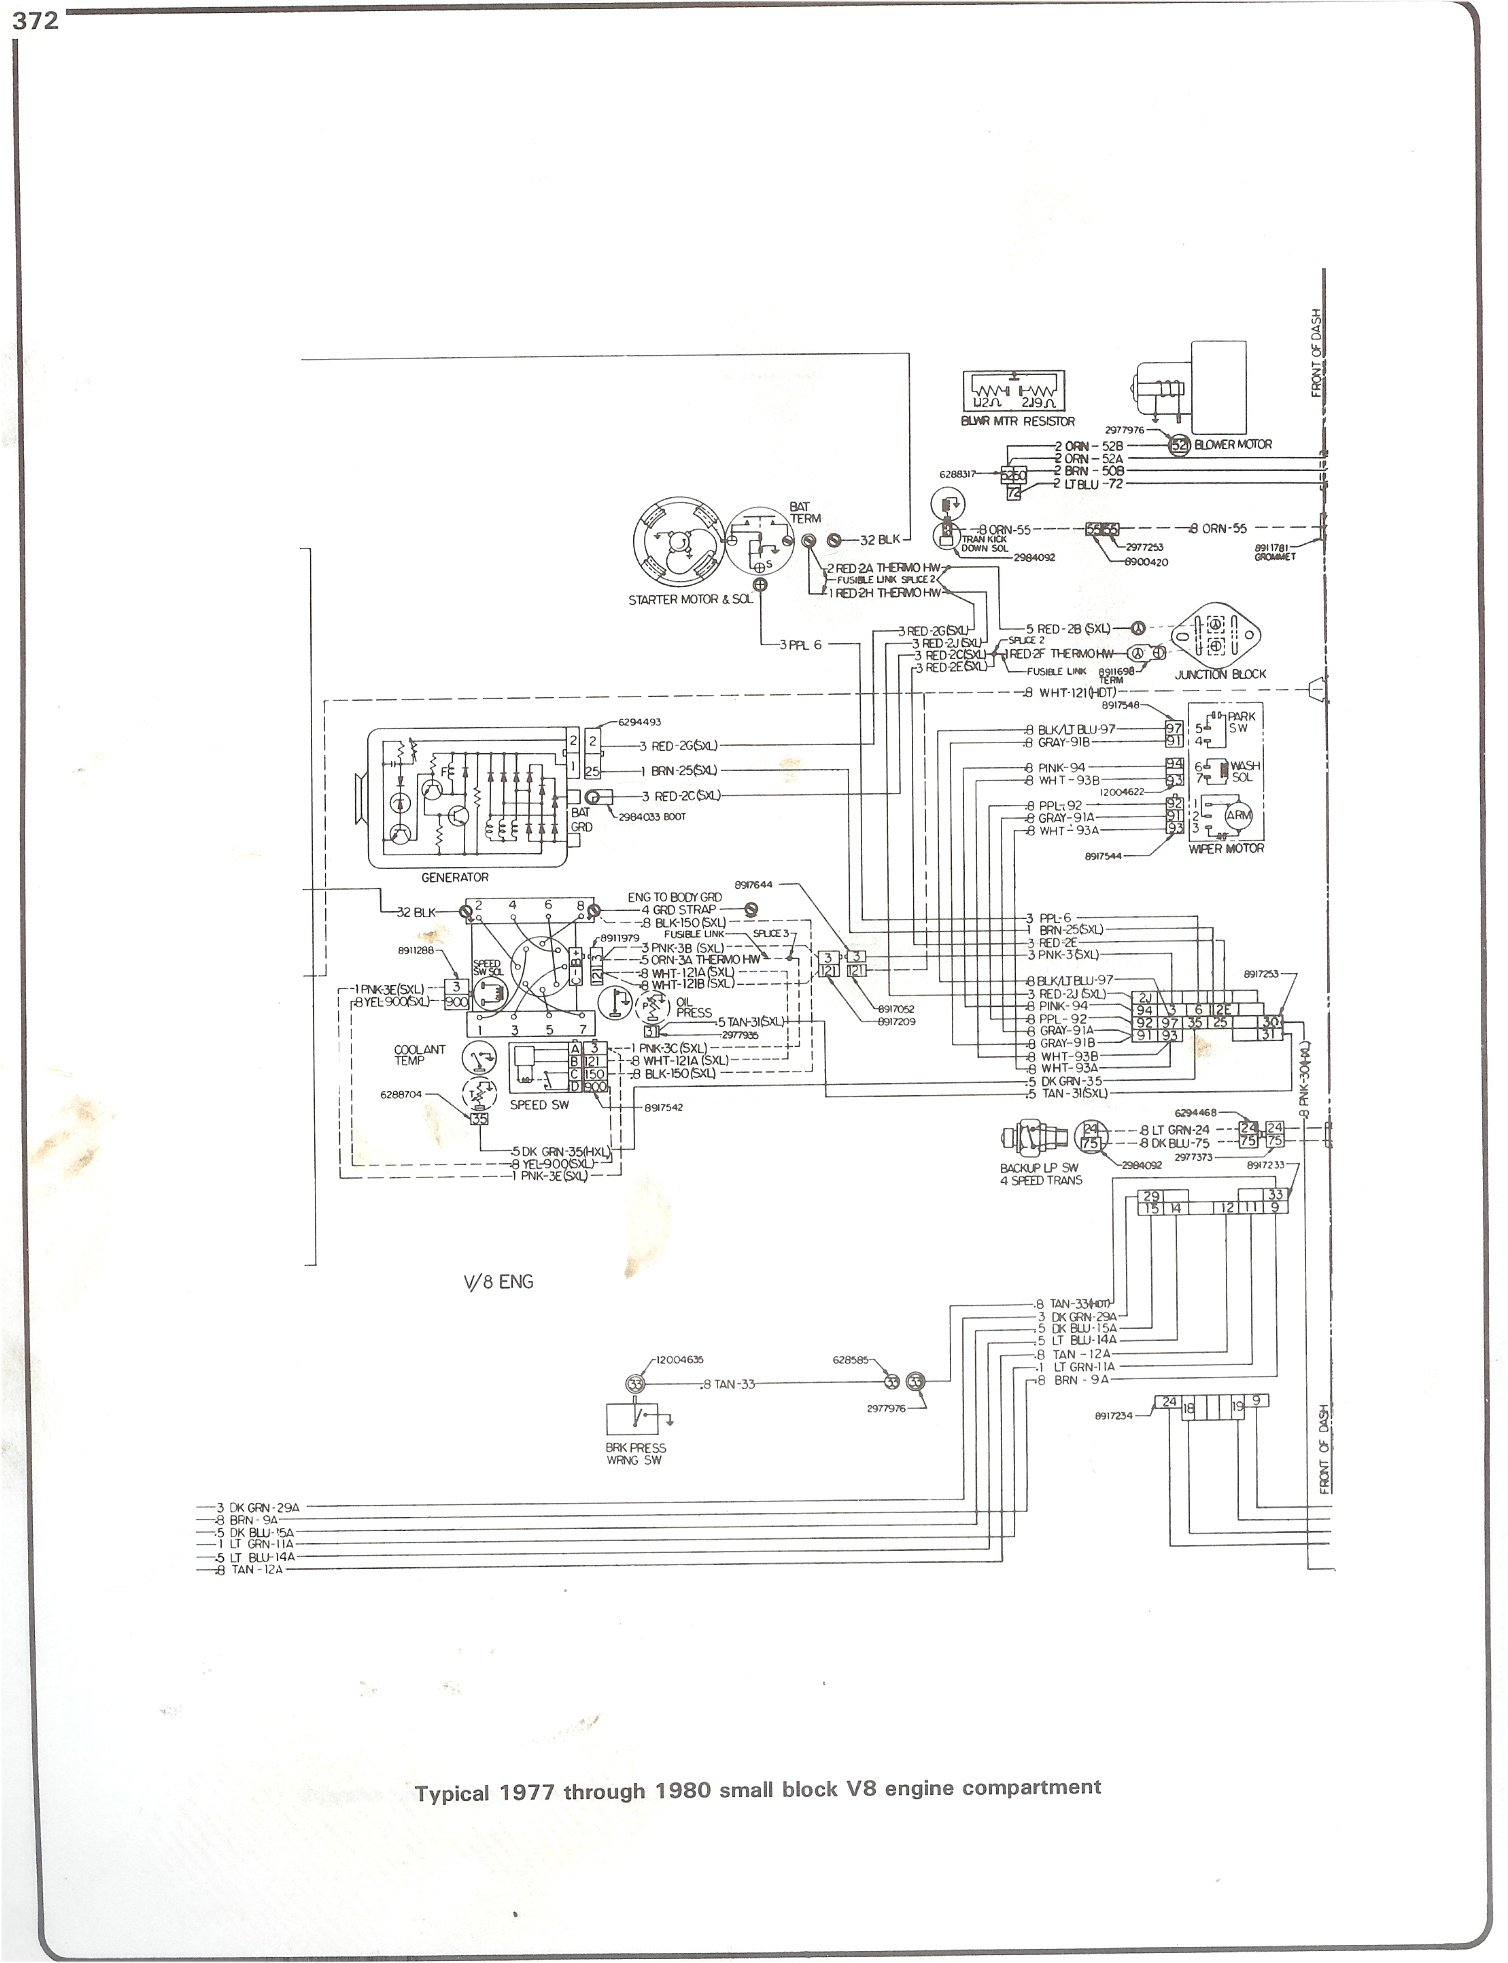 [WRG-4500] 1986 Gmc C15 Wiring Diagram